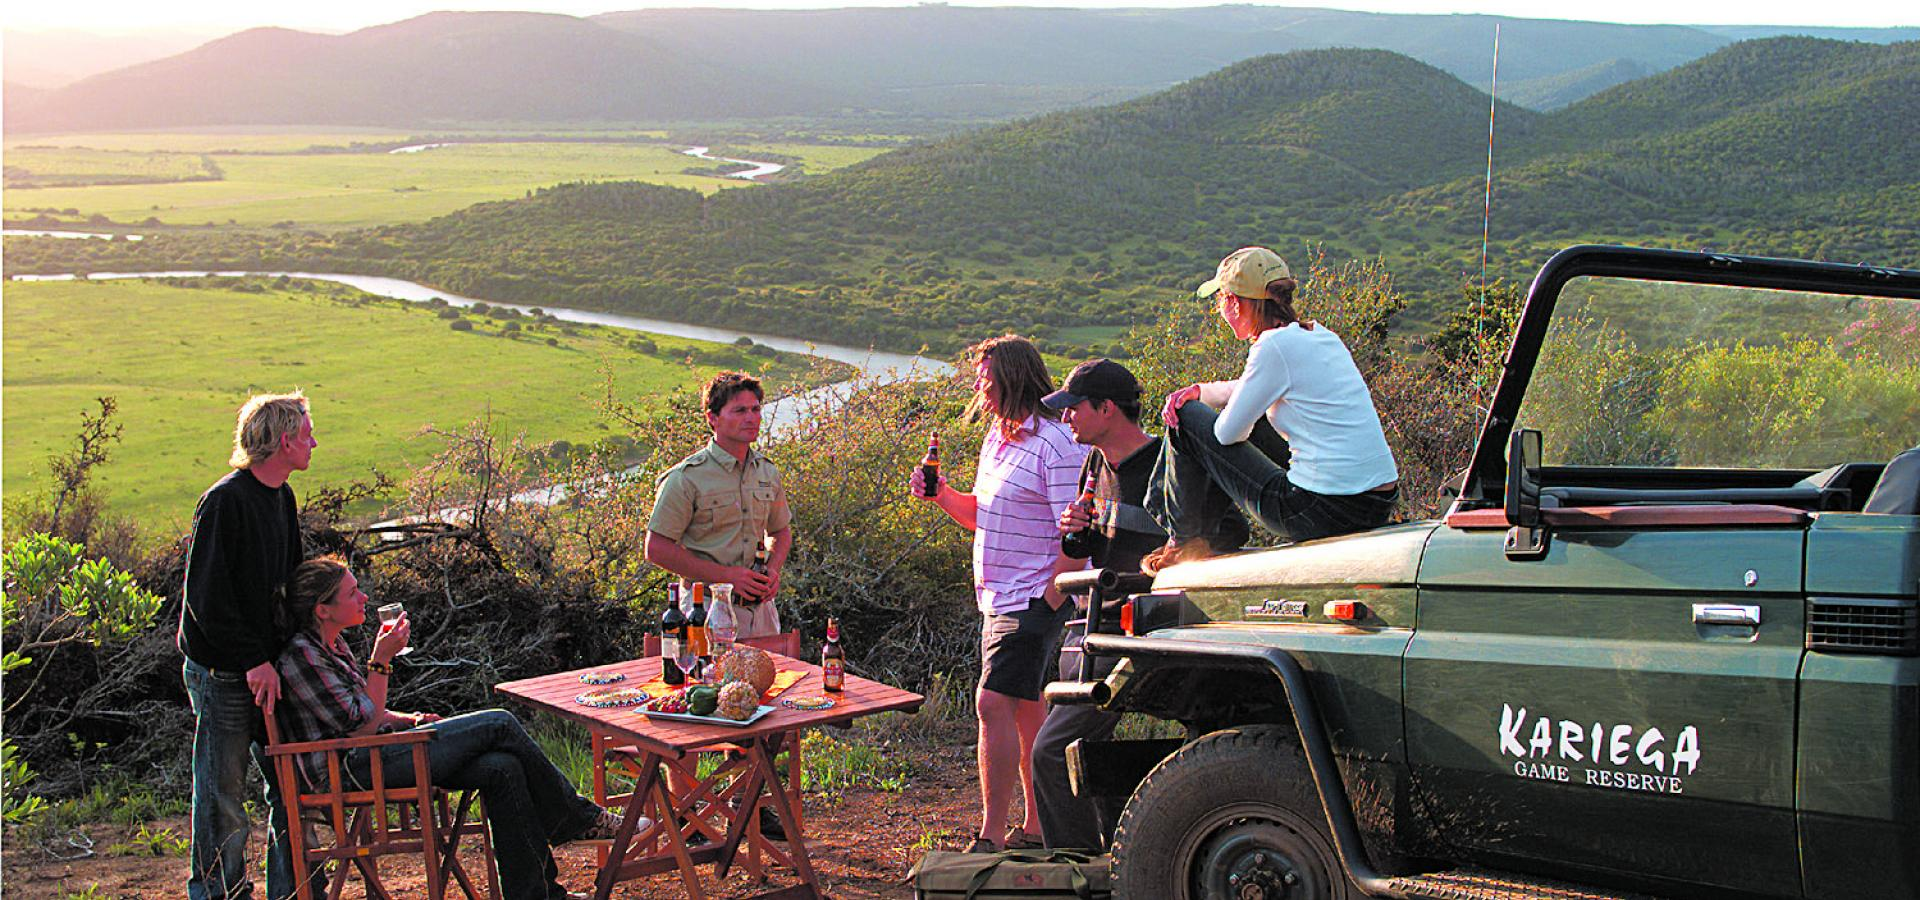 Sundowner im Kariega Game Reserve